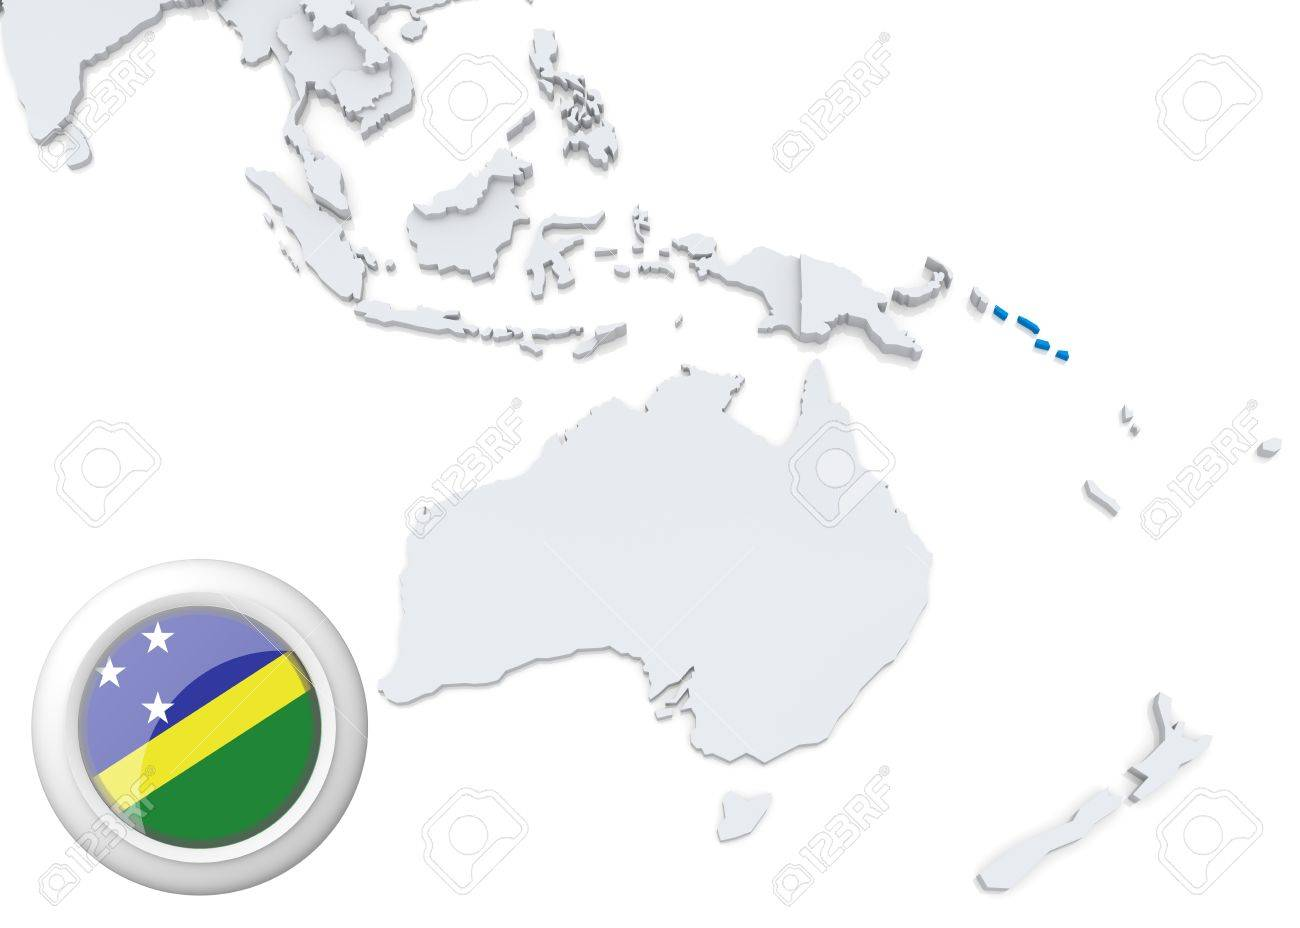 Map Of Australia Islands.Highlighted Solomon Islands On Map Of Australia And Oceania With